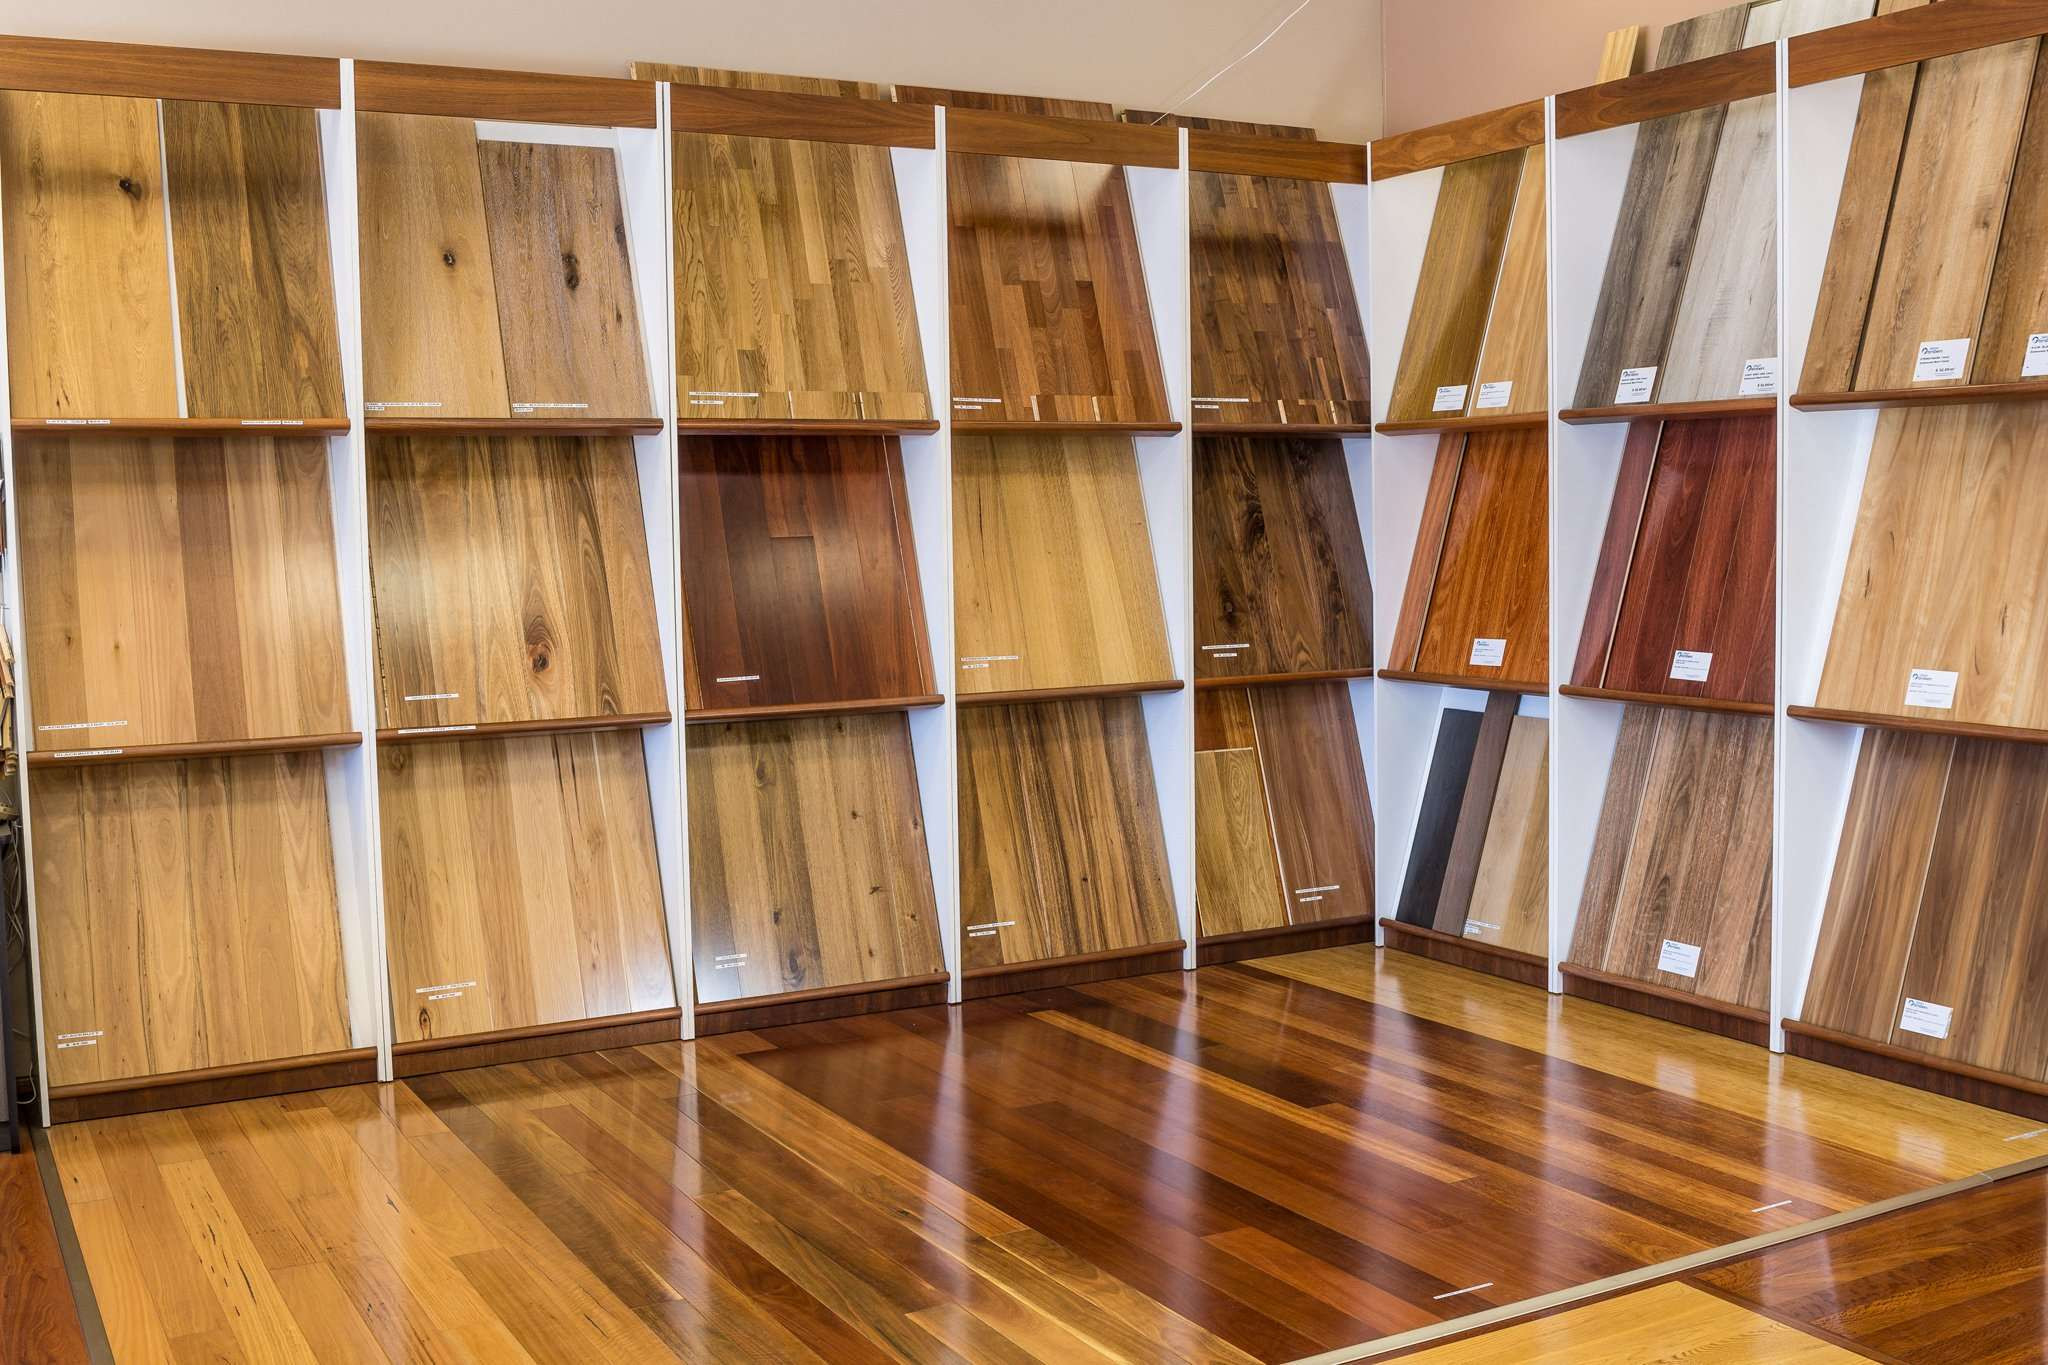 how much is the average cost to install hardwood floors of wood floor price lists a1 wood floors throughout price lists a· services a· faq a· contact us 12mm laminate on sale 28 00 ma²